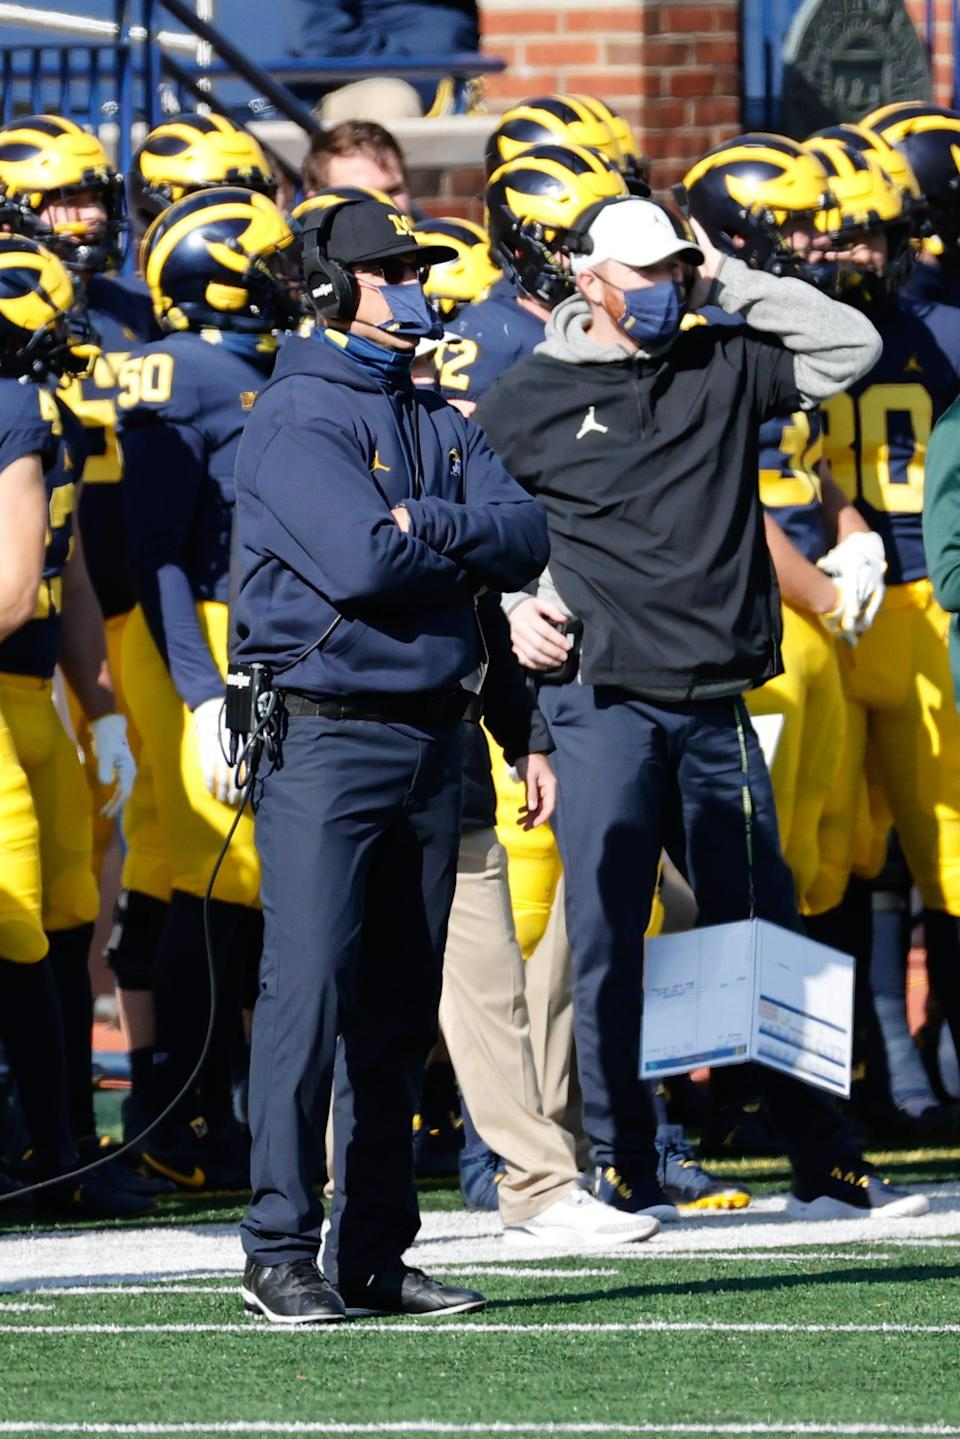 Michigan coach Jim Harbaugh on the sideline in the first half of MSU's 27-24 win over U-M on Saturday, Oct. 31, 2020, at Michigan Stadium.